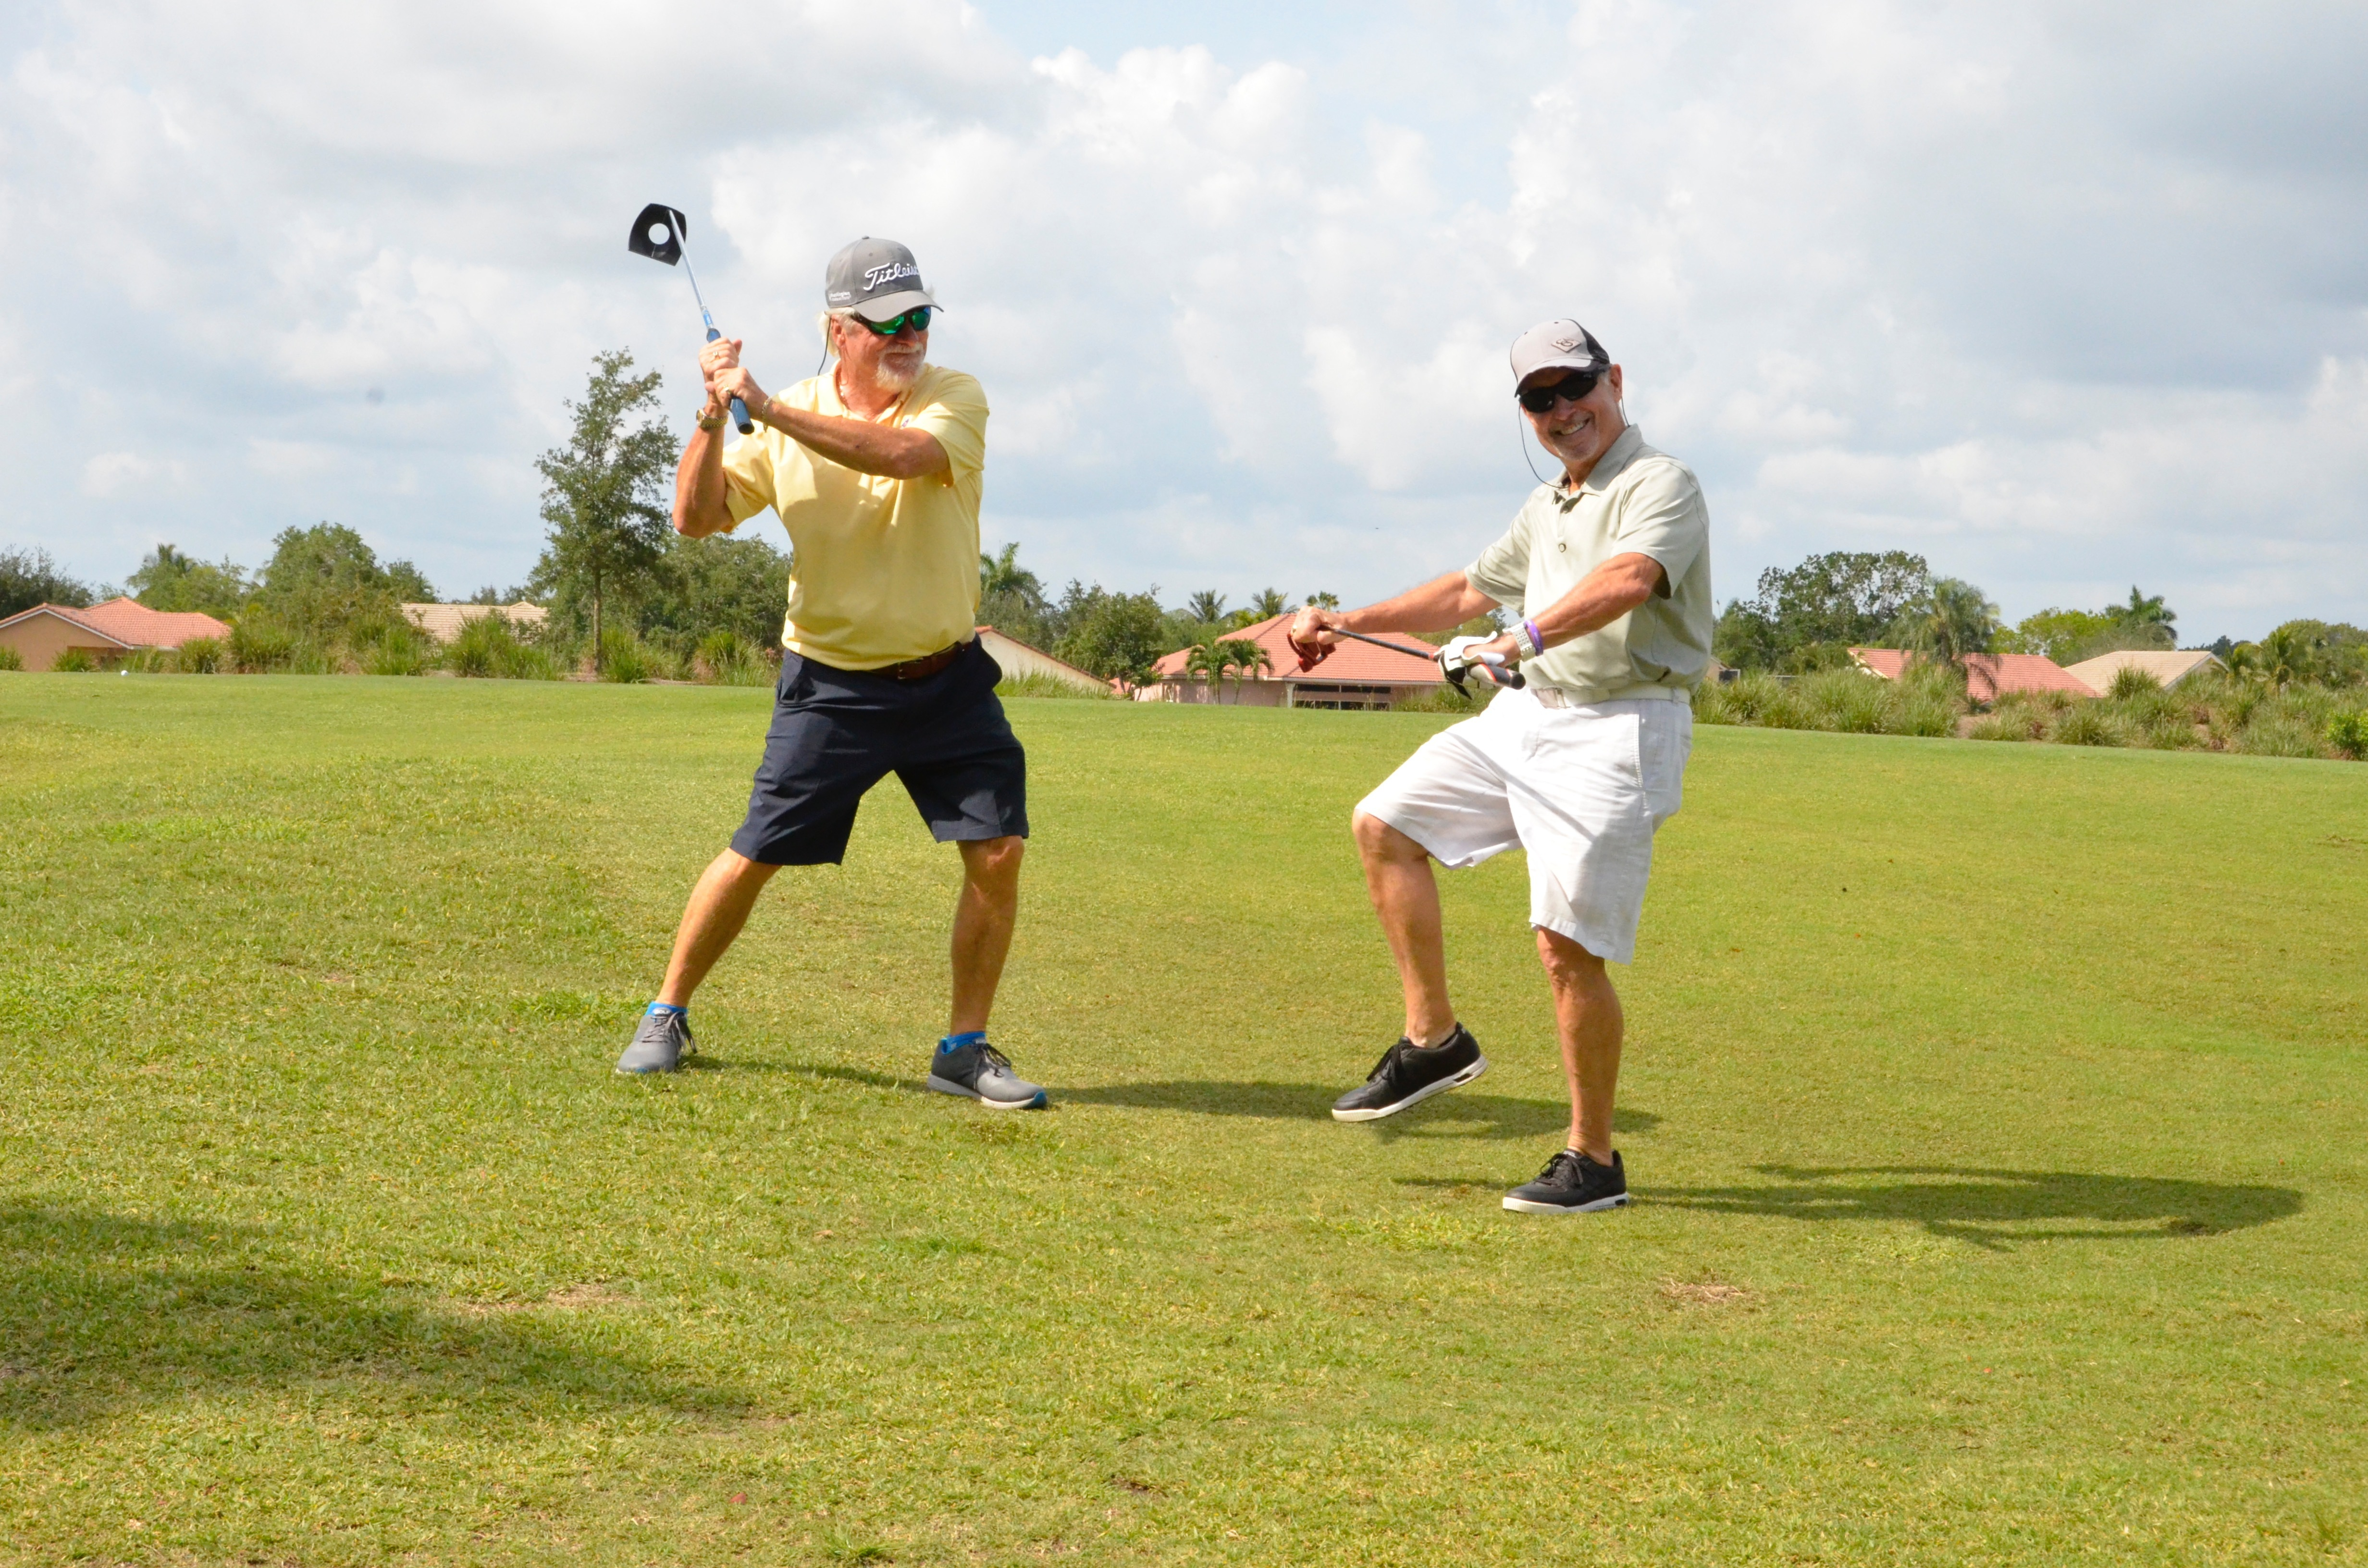 33rd Annual Rotary Golf Classic Sponsored by FHVLEGAL.COM gallery image #17